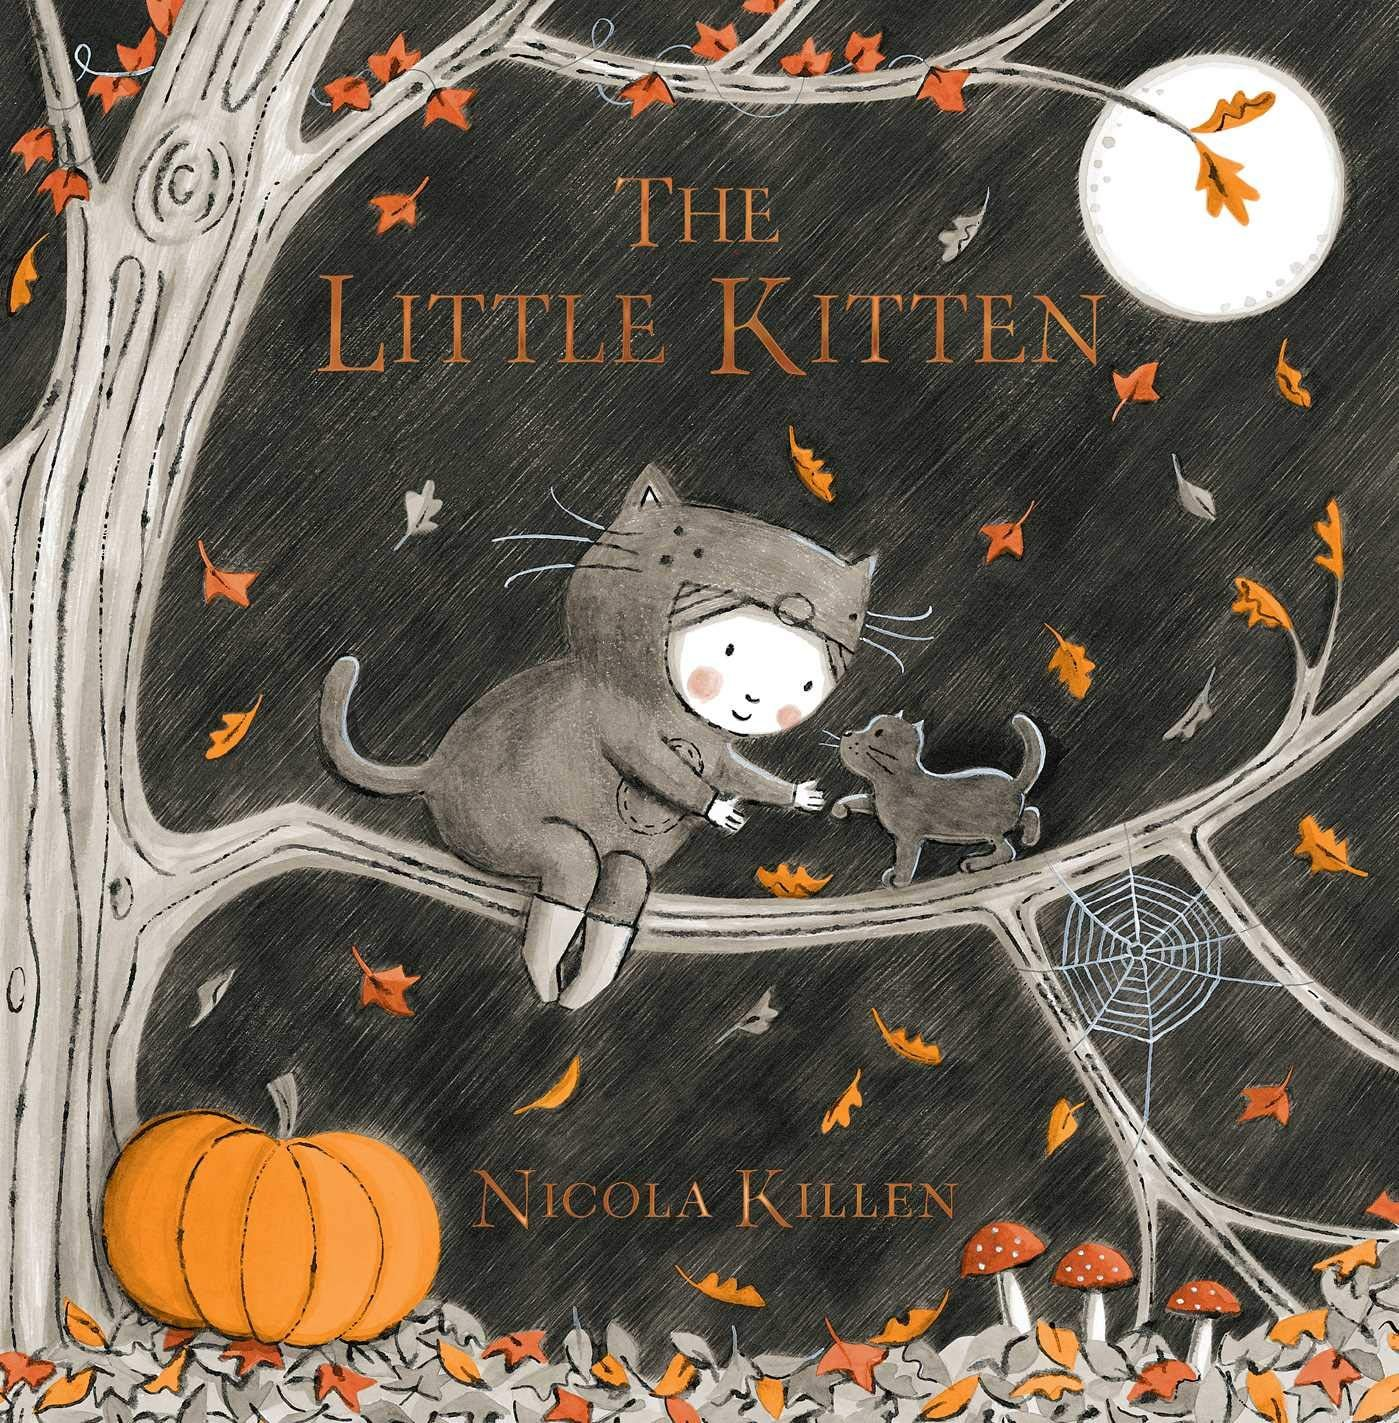 The Little Kitten by Nicola Killen